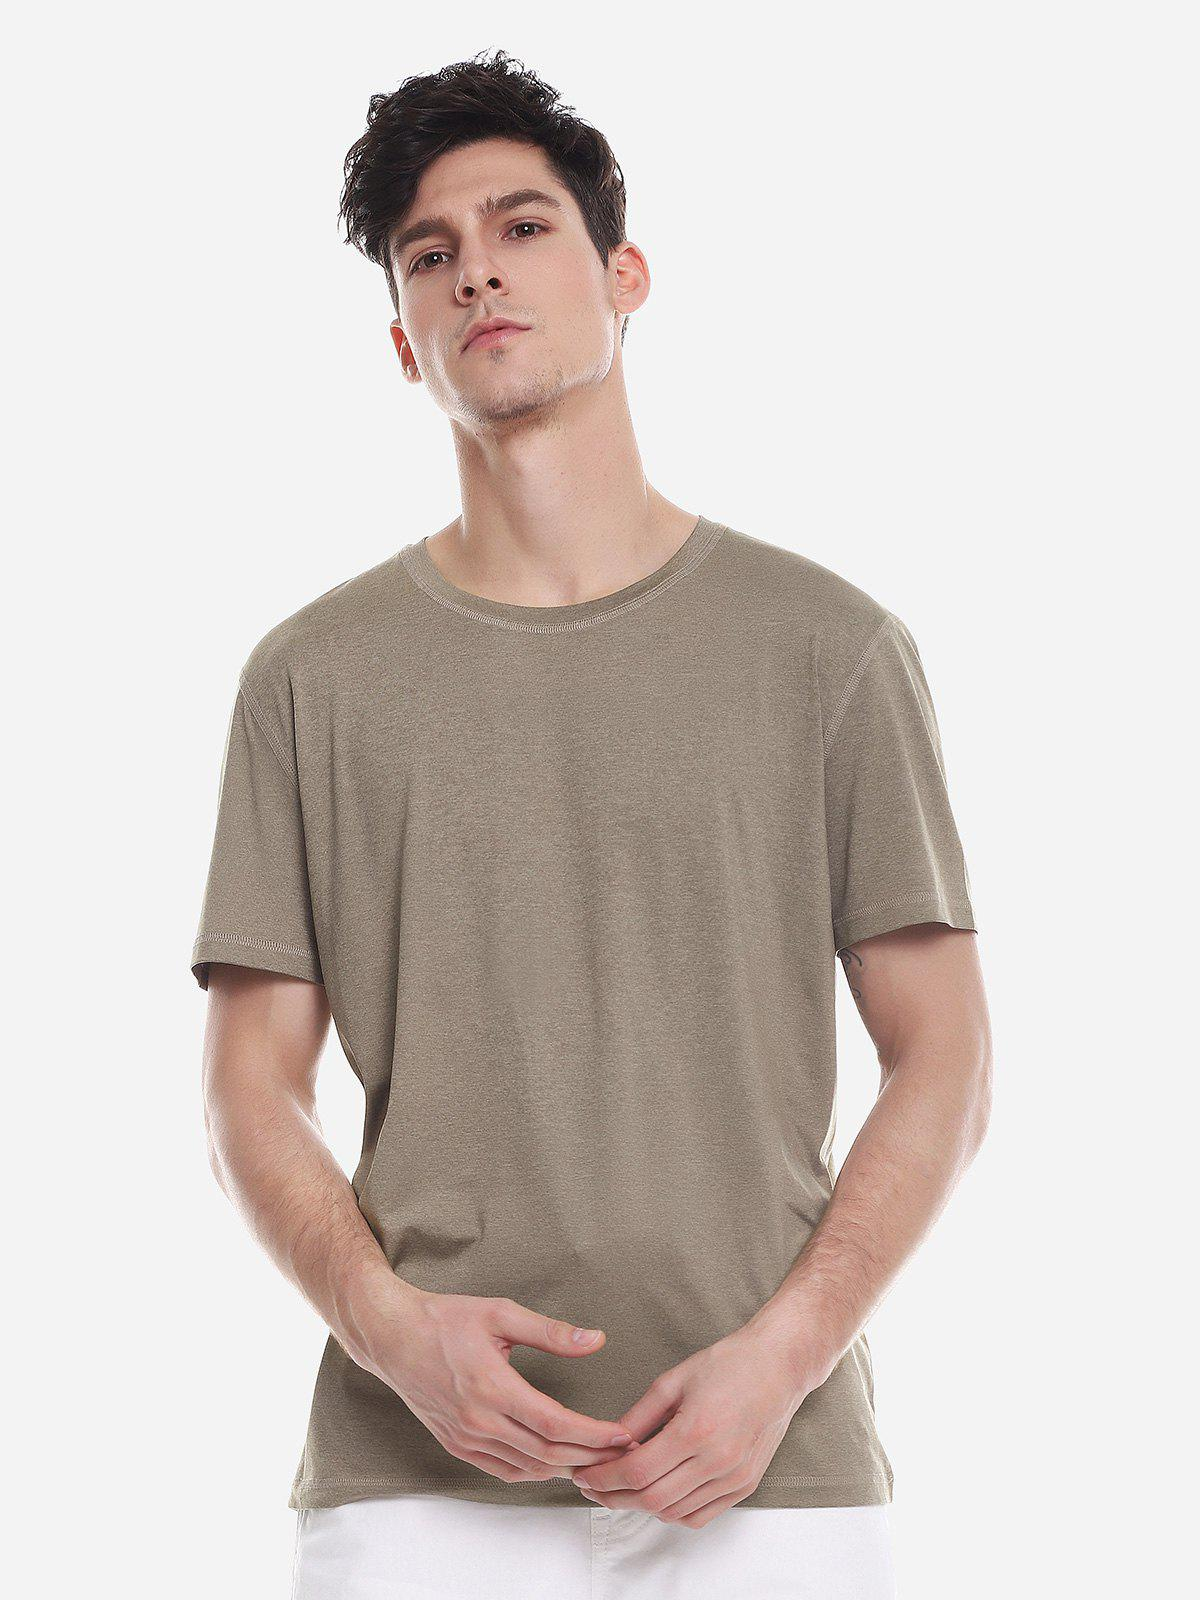 ZAN.STYLE T Shirt Crew Neck - DARK KHAKI XL